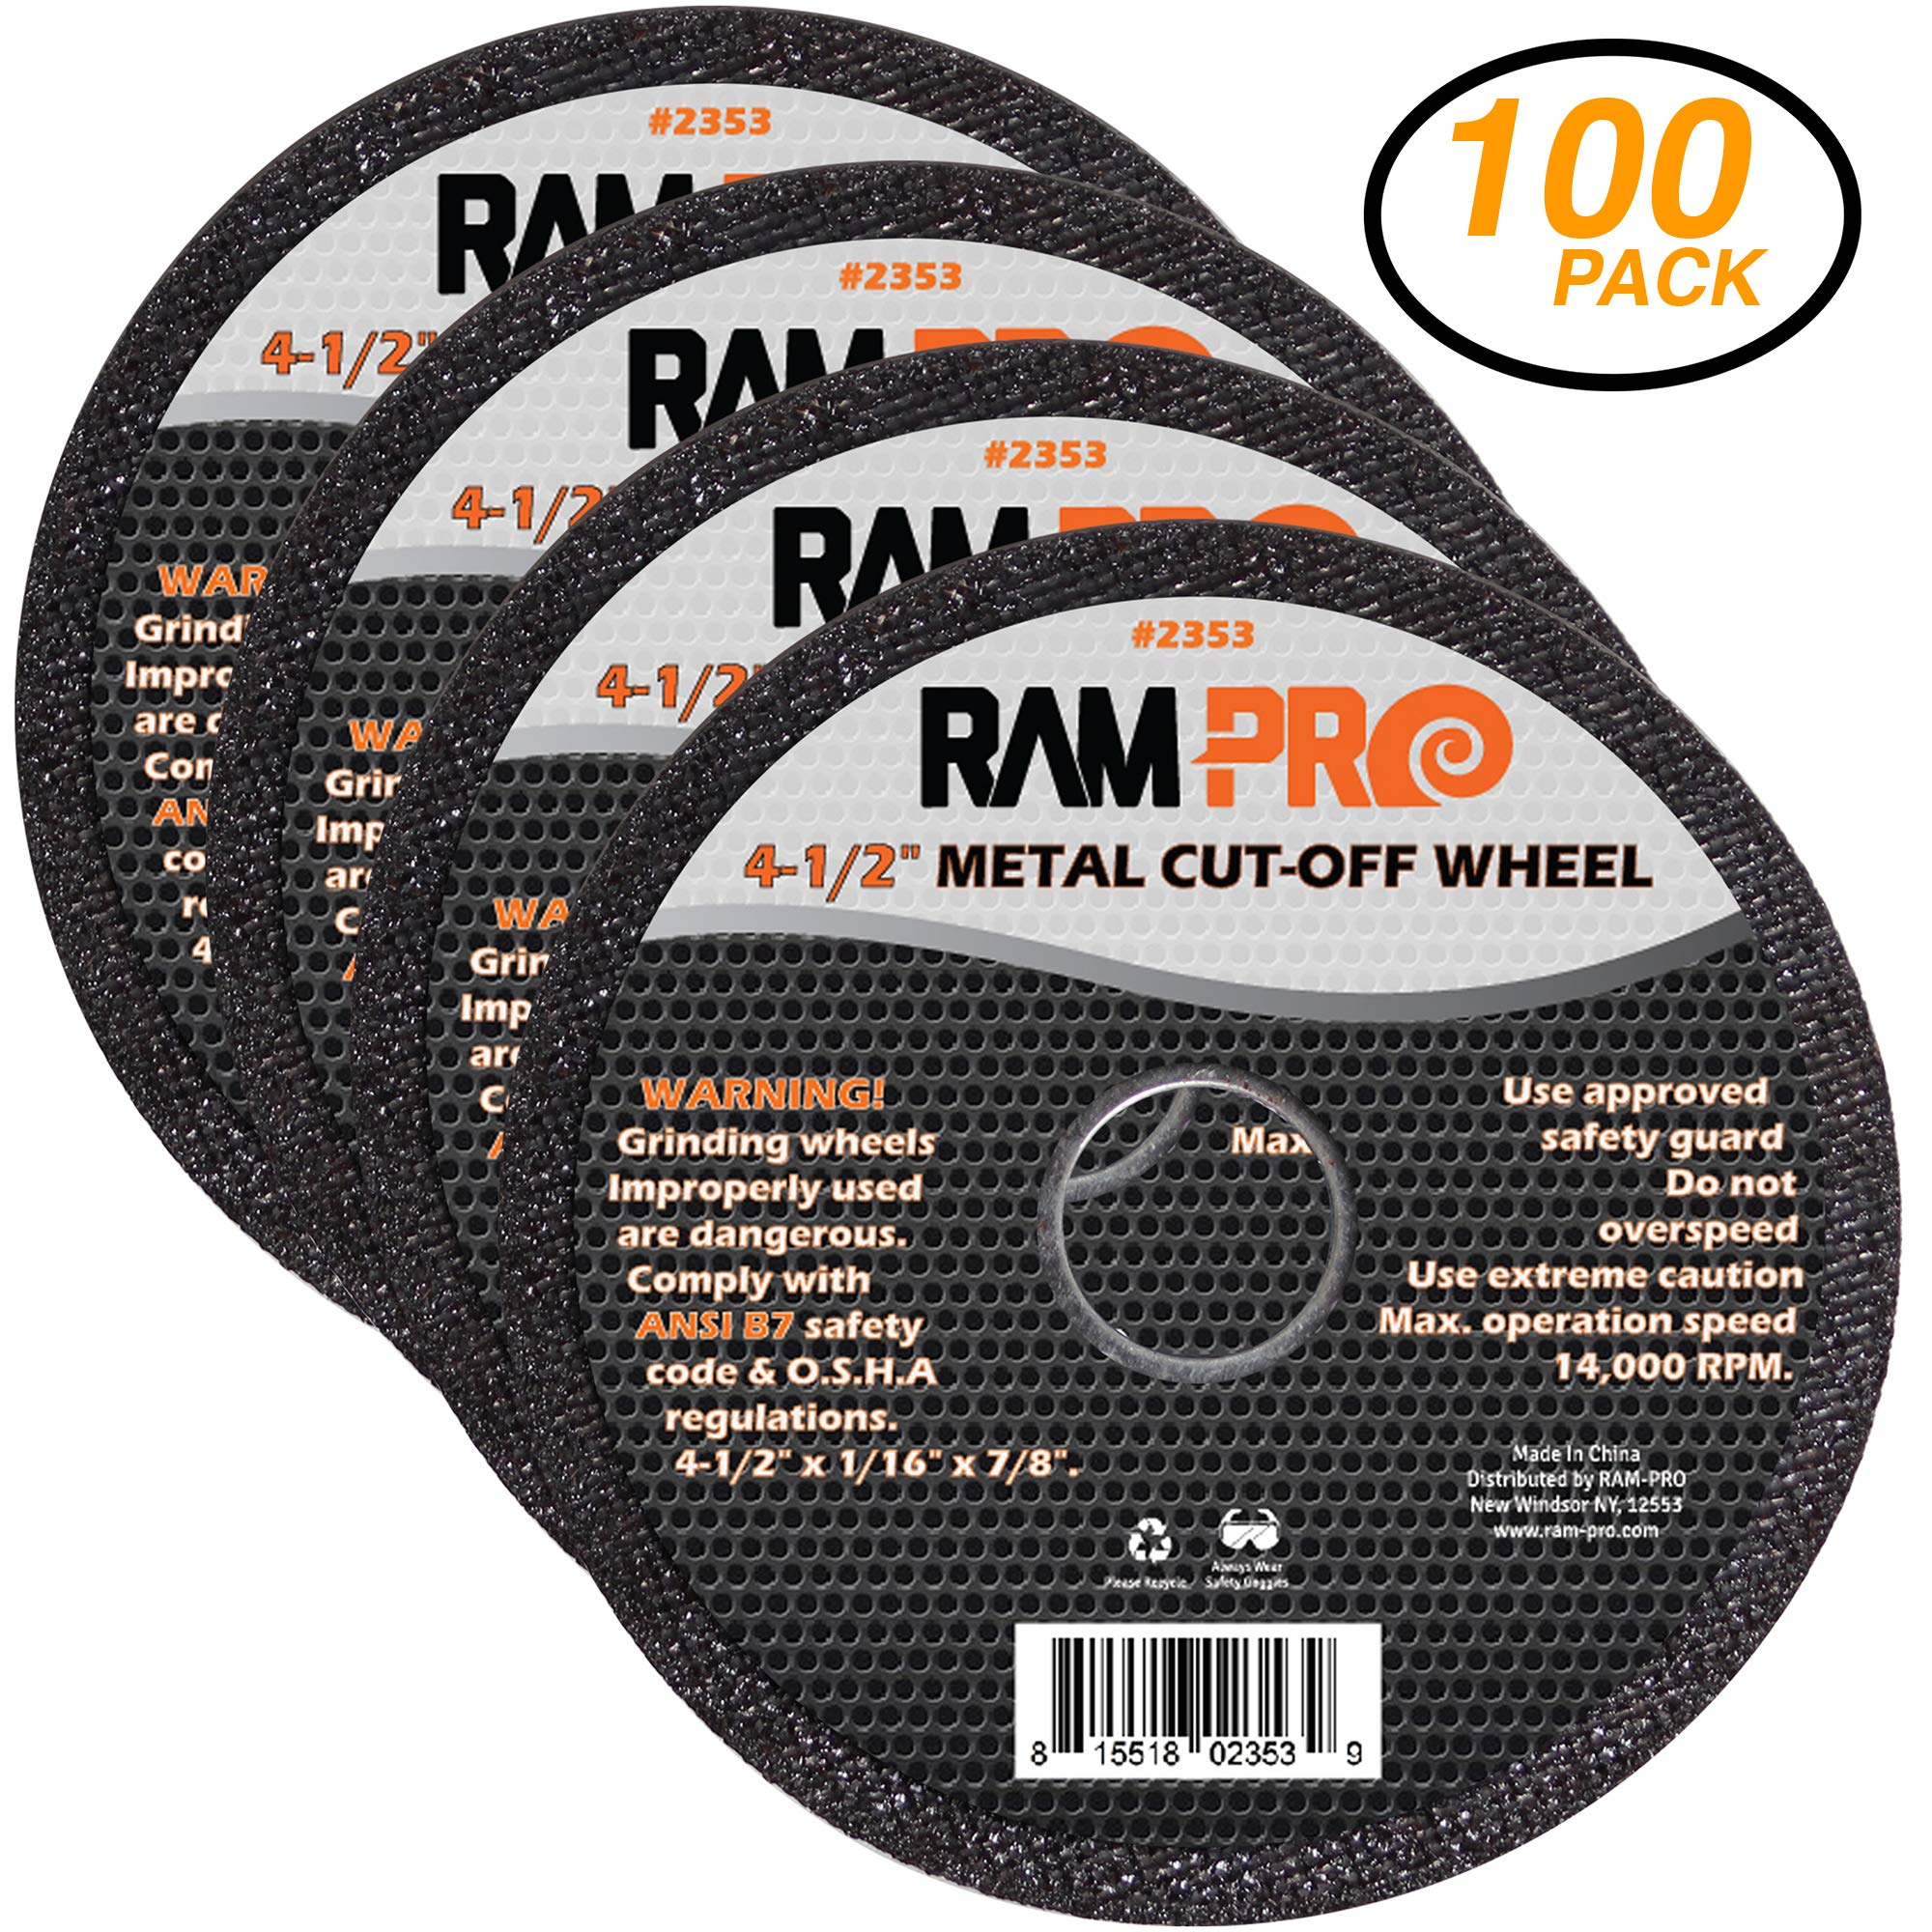 Ram-Pro 4-1/2 Inch Metal Cut-Off Wheel Blades | Abrasive Arbor Grinder Disc Set Ideal for Cutting, Grooving, Sanding and Trimming Ferrous Metal & Steel (100 Pack). by Ram-Pro (Image #1)